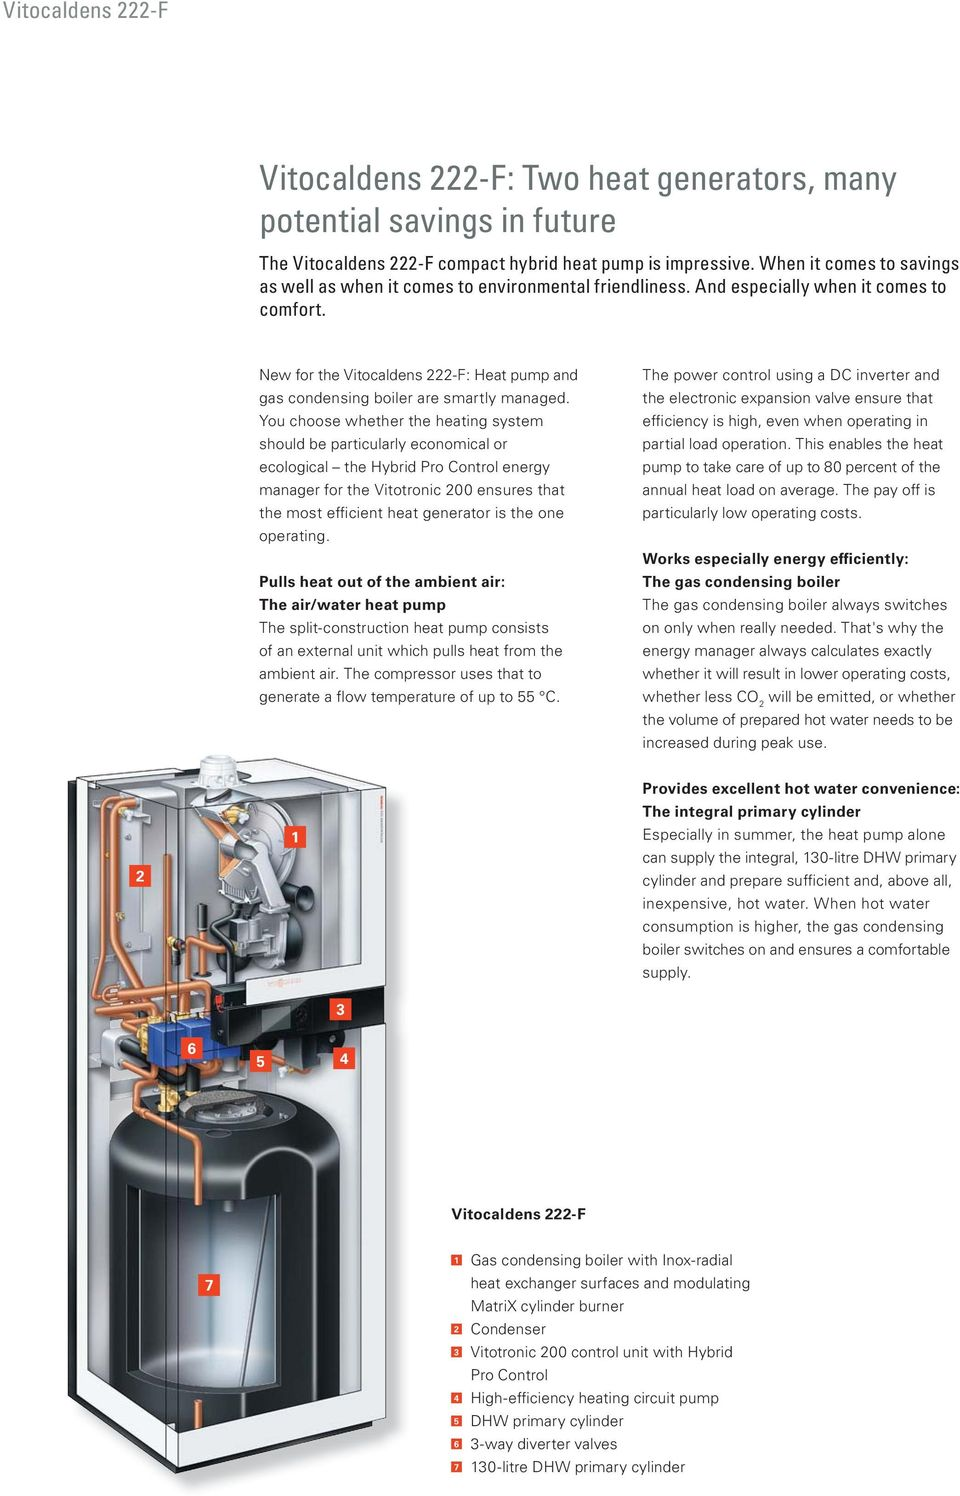 New for the Vitocaldens 222-F: Heat pump and gas condensing boiler are smartly managed.